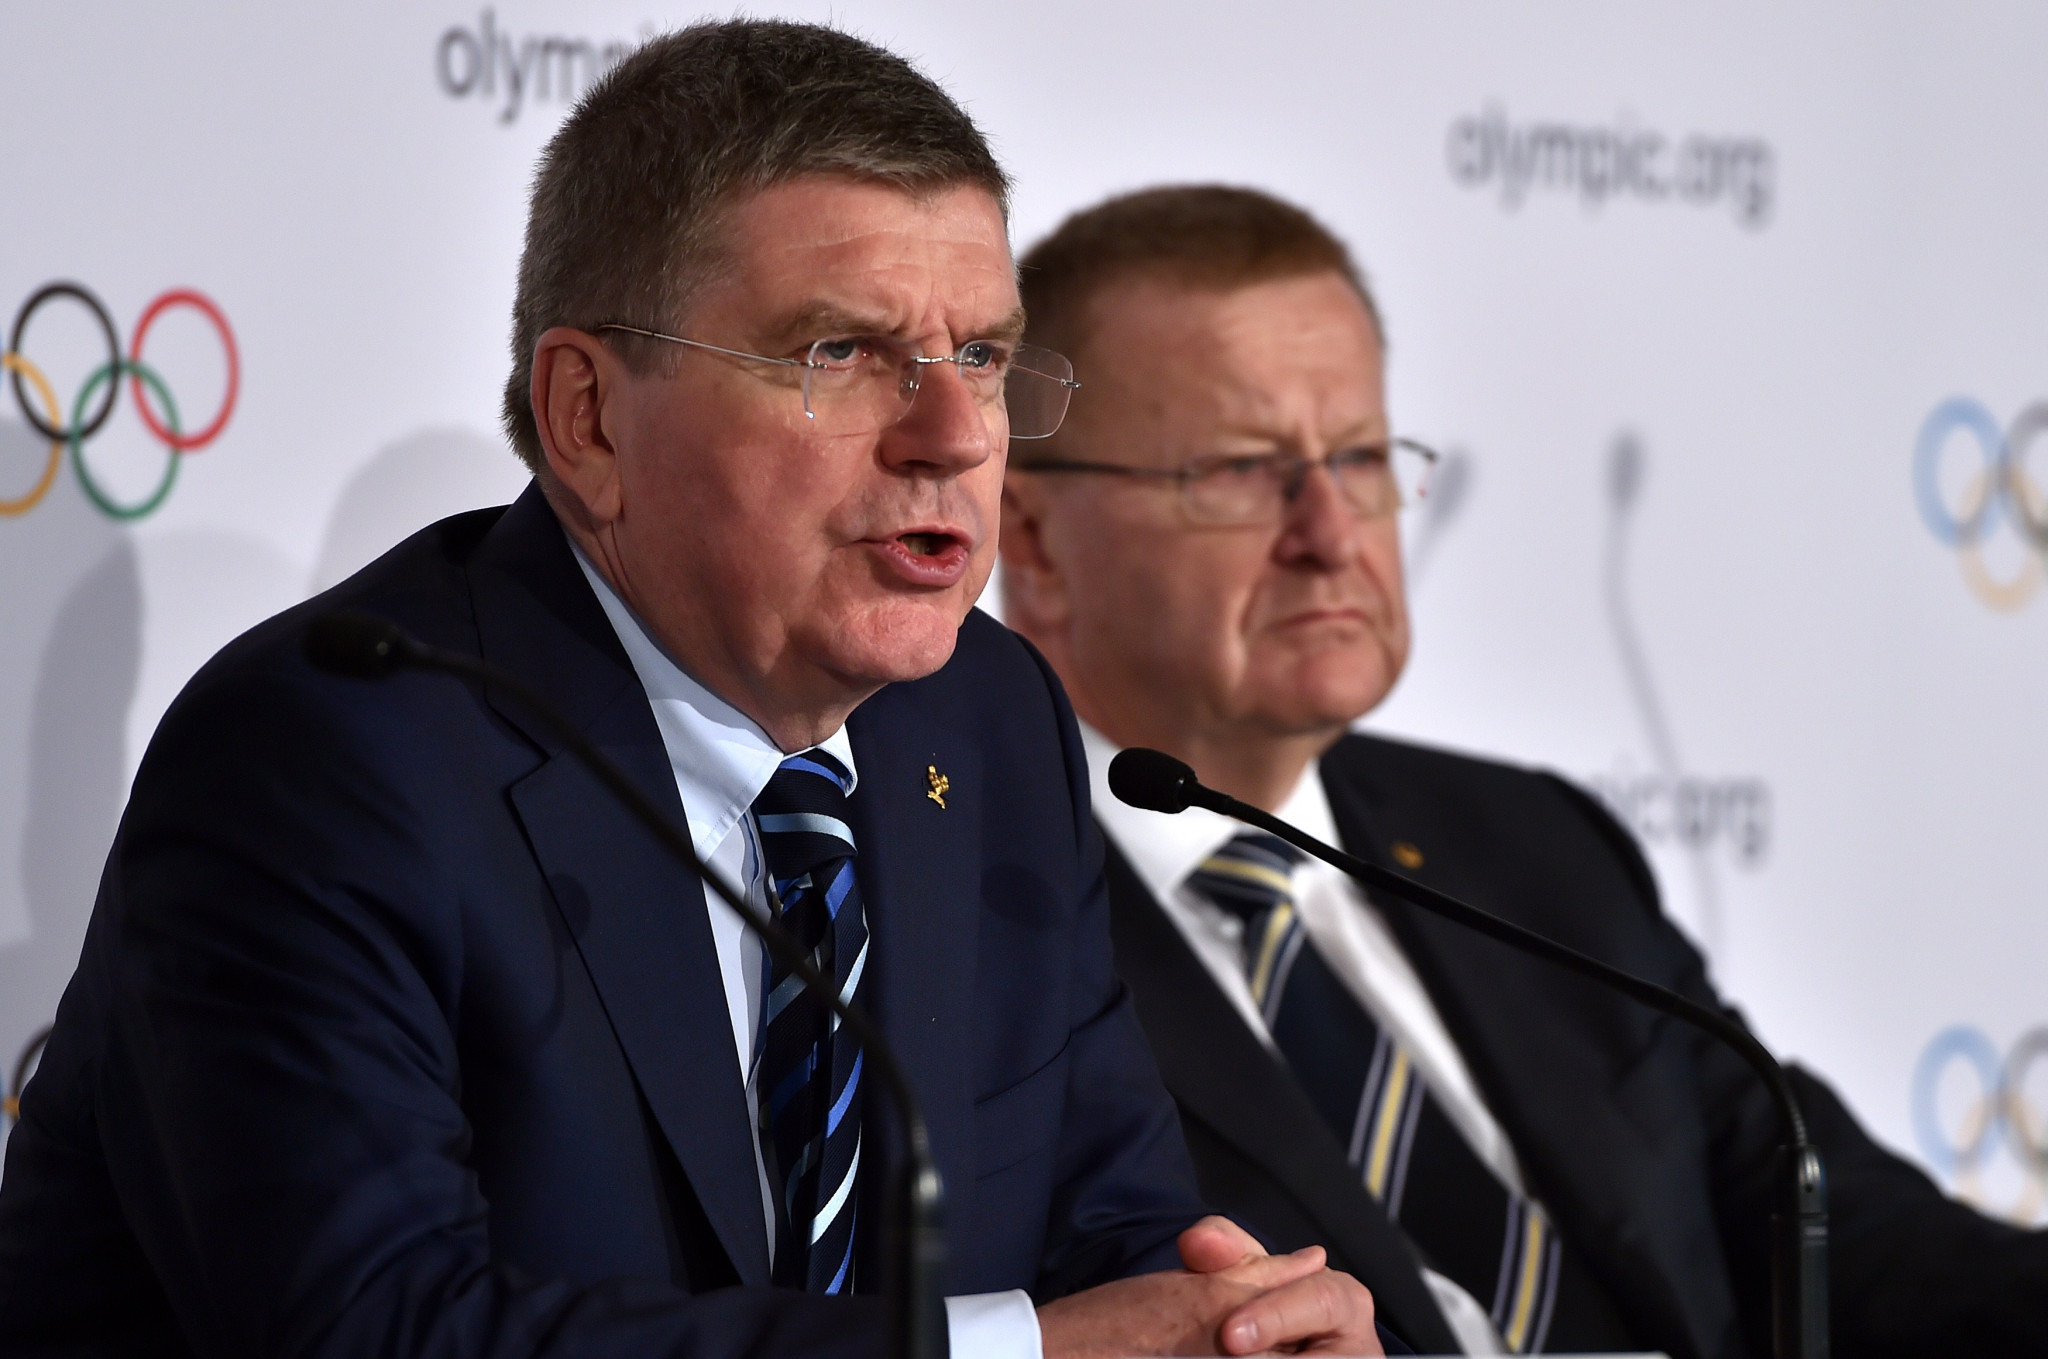 Thomas Bach, left, alongside former IOC vice-president John Coates, the President of the Court of Arbitration for Sport, a figure widely seen as a close ally of the German ©Getty Images